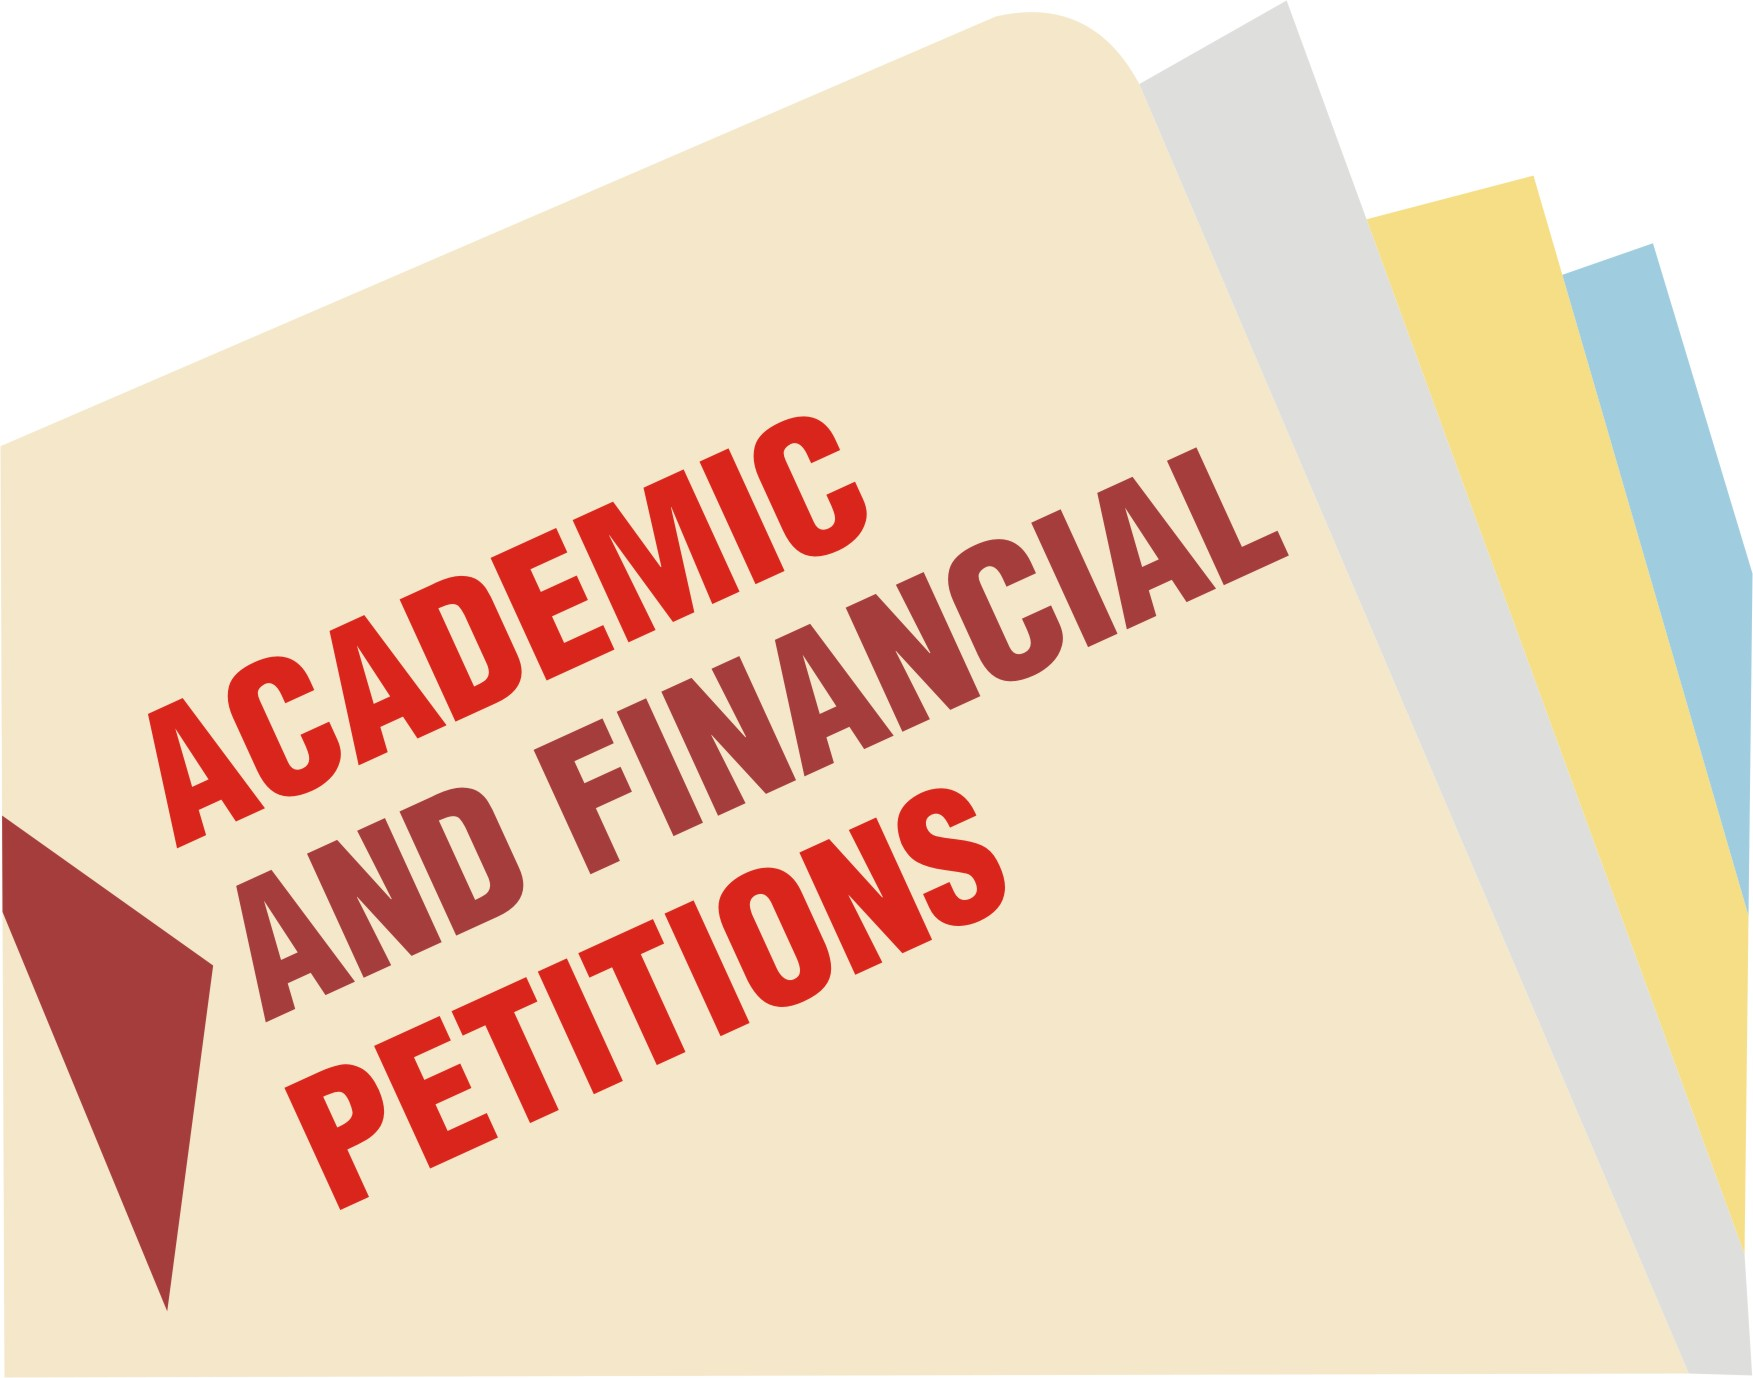 tiquetera Academic and financial petitions